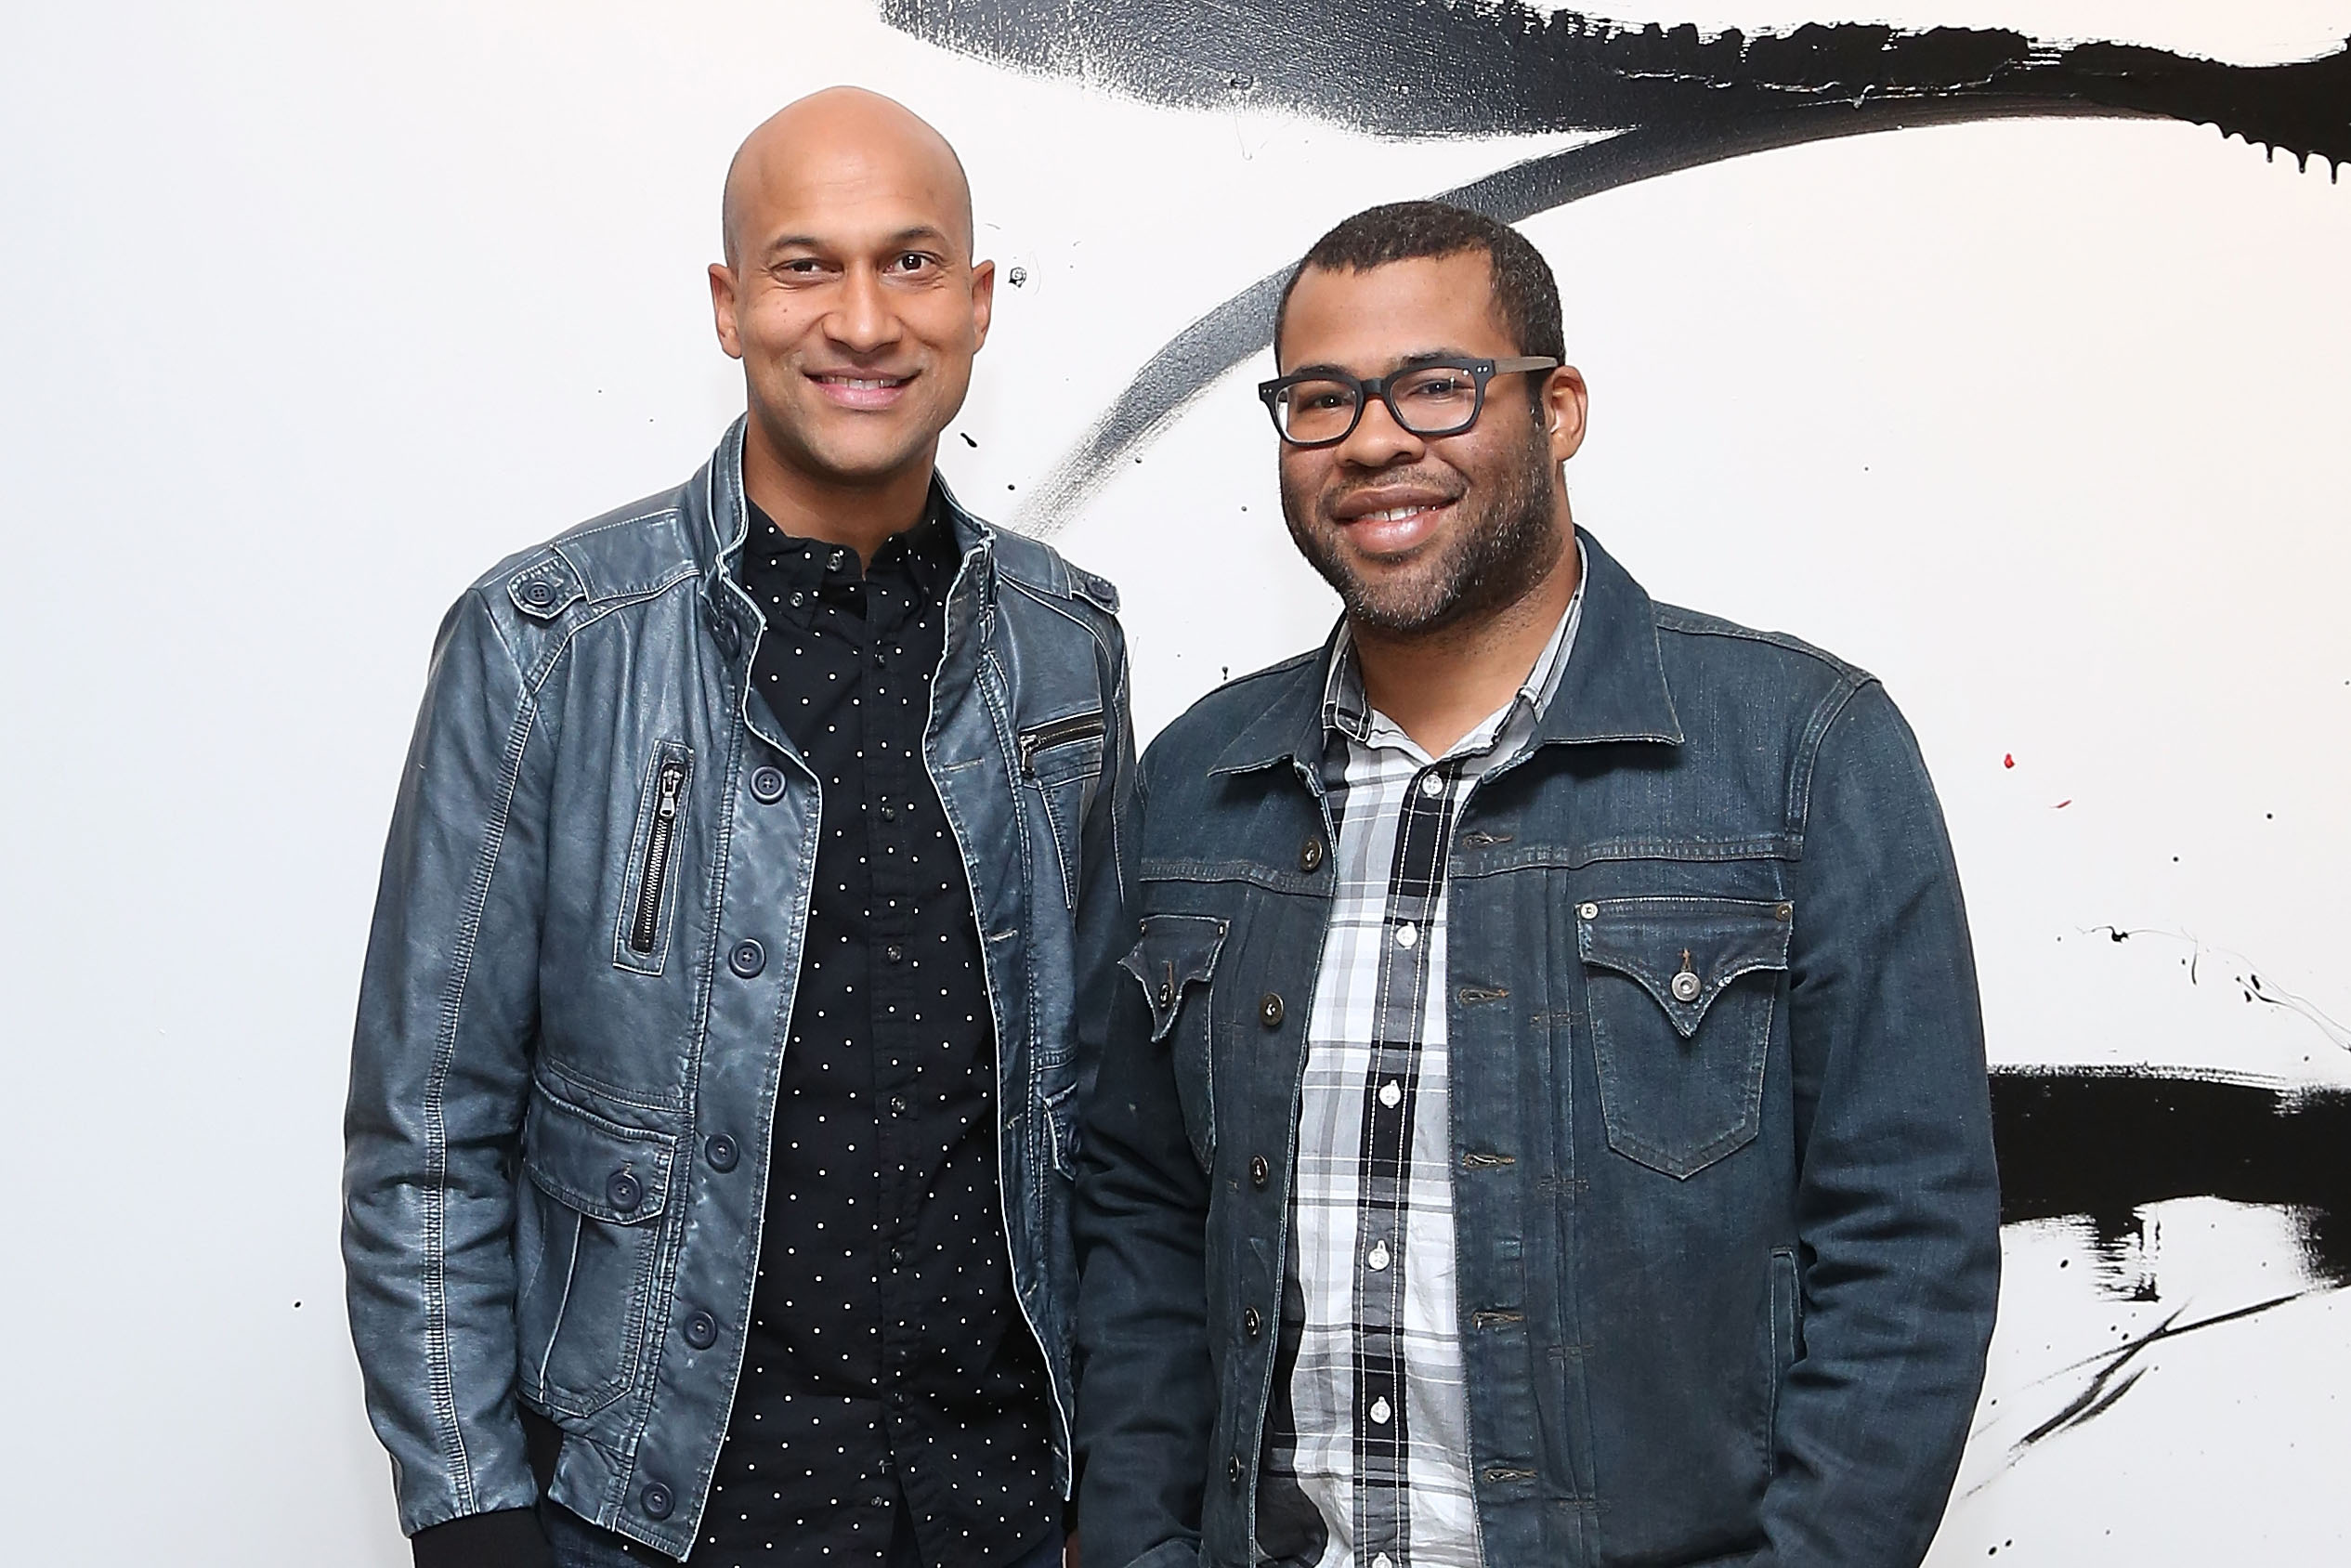 The comedic duo Key & Peele pose for a portrait at AOL Studios in New York City on Oct. 10, 2014